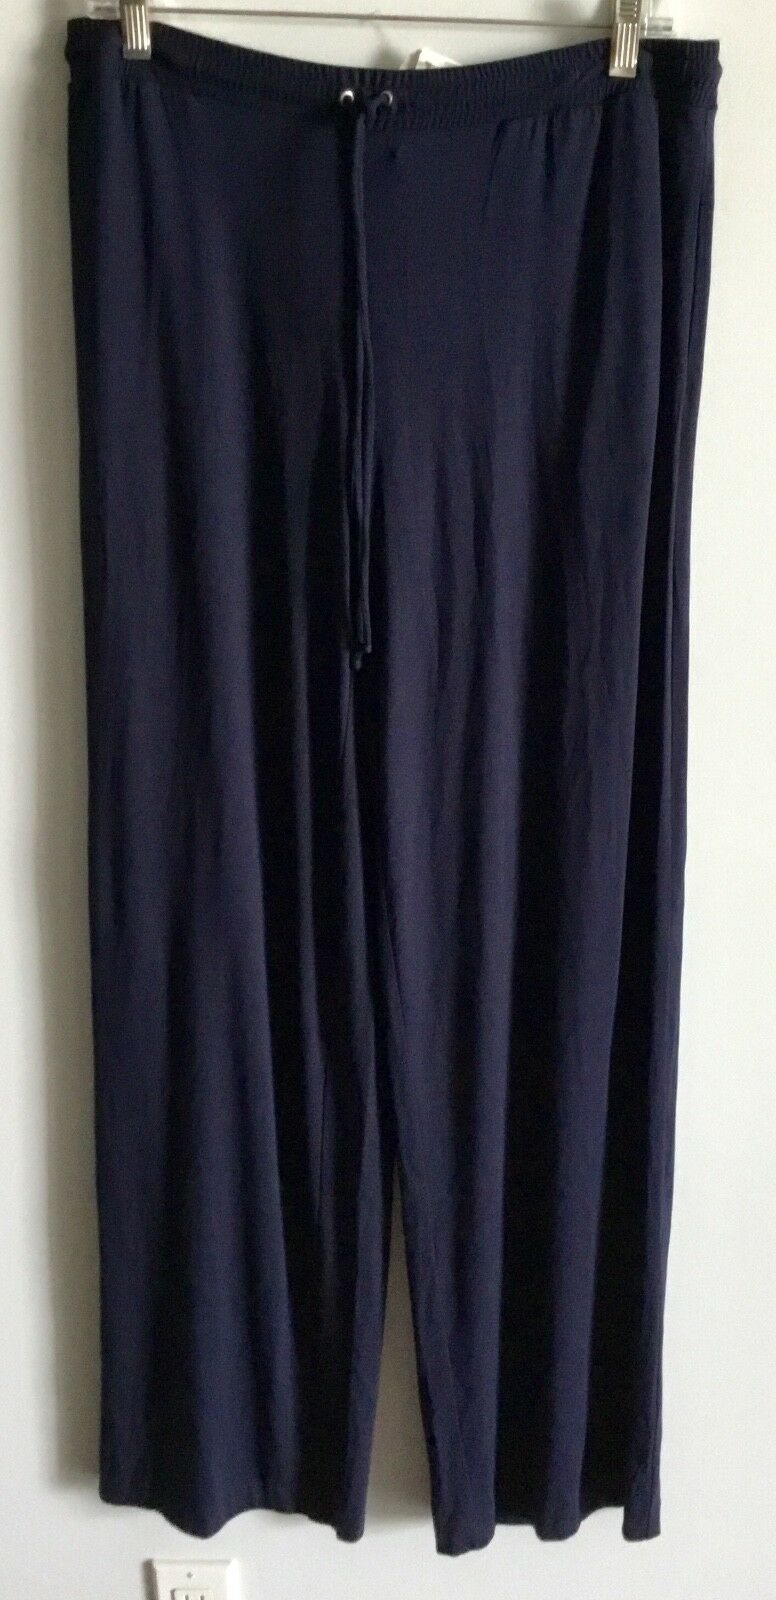 New LA PERLA Ladies Pants With Tag,Authentic,Size 42 US 6 bluee .Made In italy.